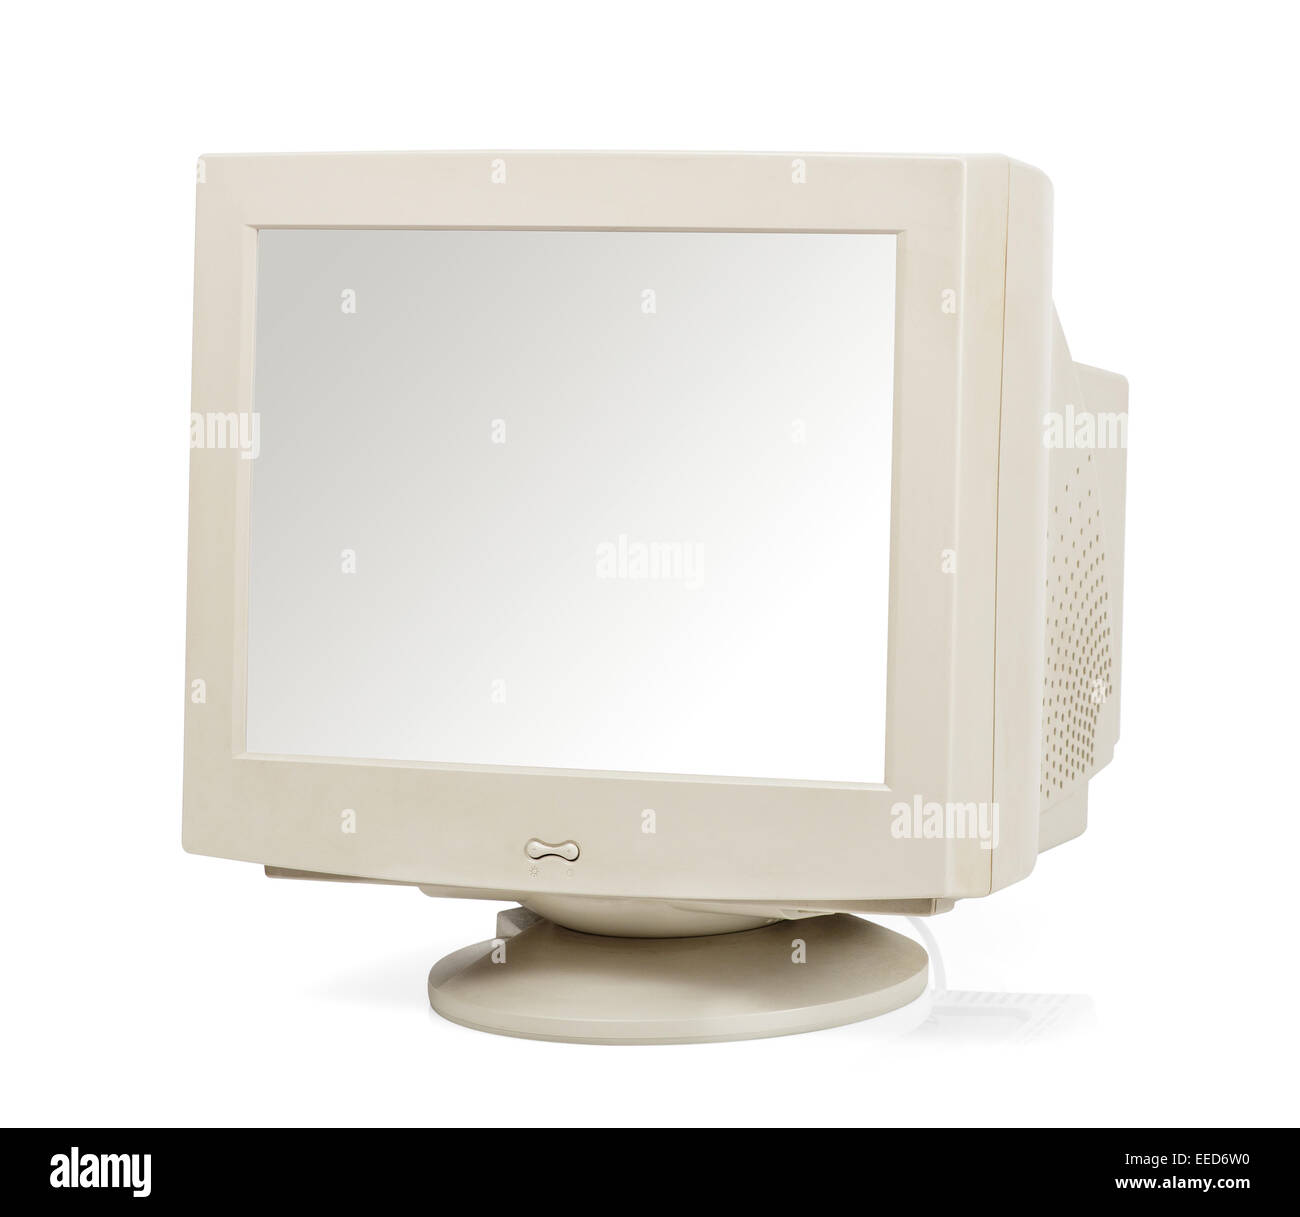 Vintage computer monitor isolated on white - Stock Image